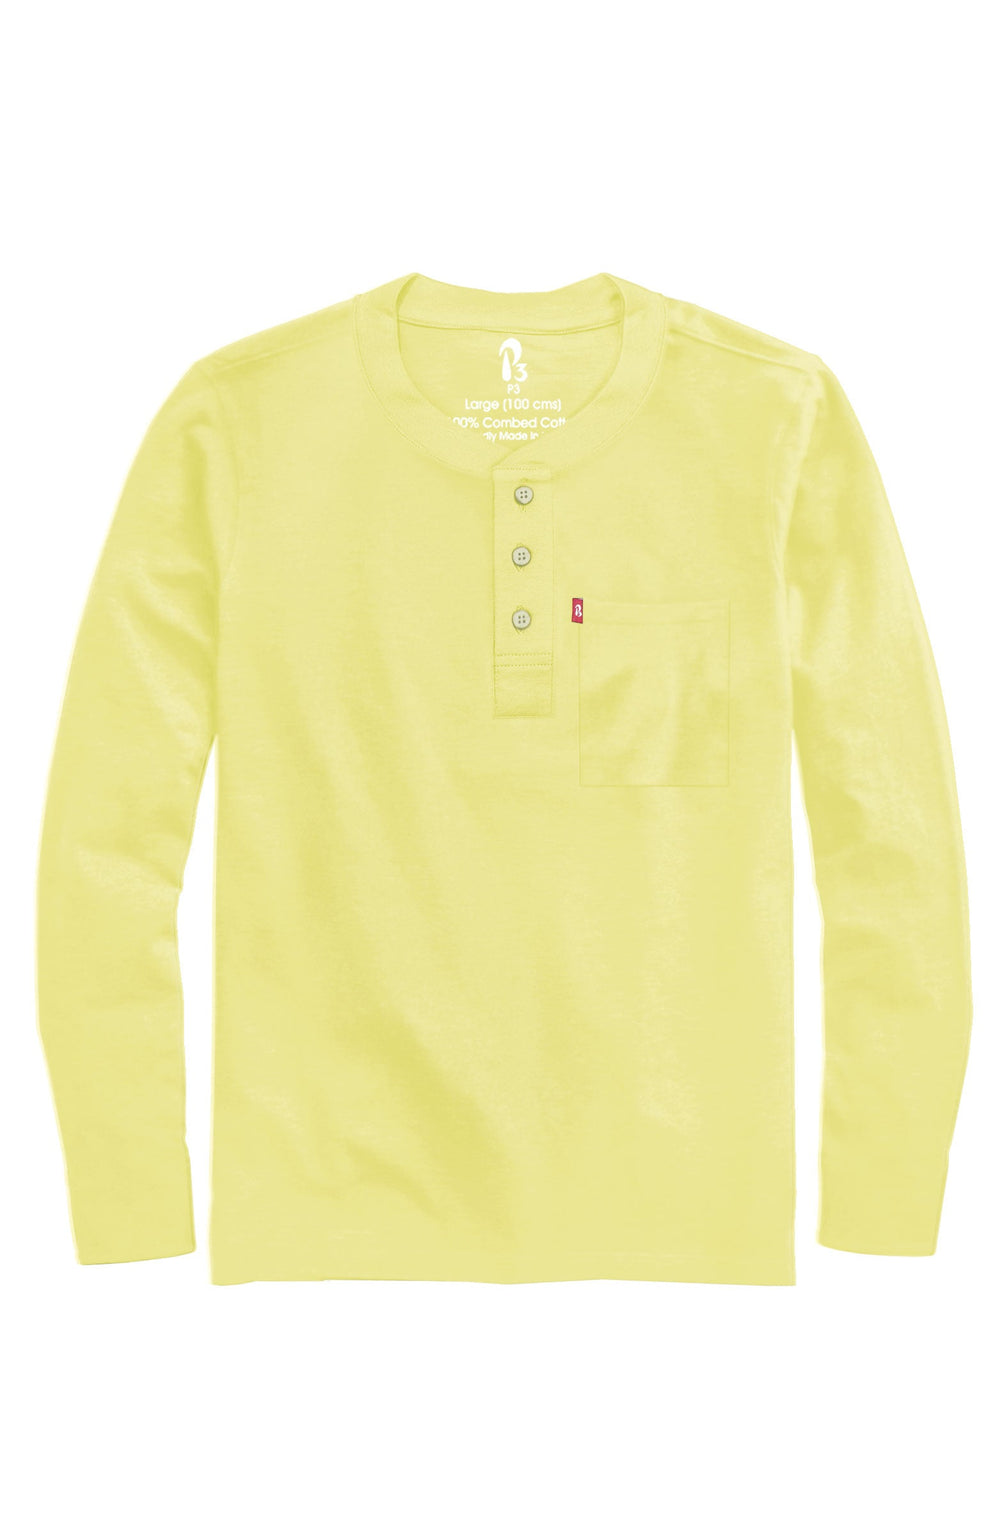 Ace Full Sleeved Ribbed Henley (MRP inclusive of all taxes)